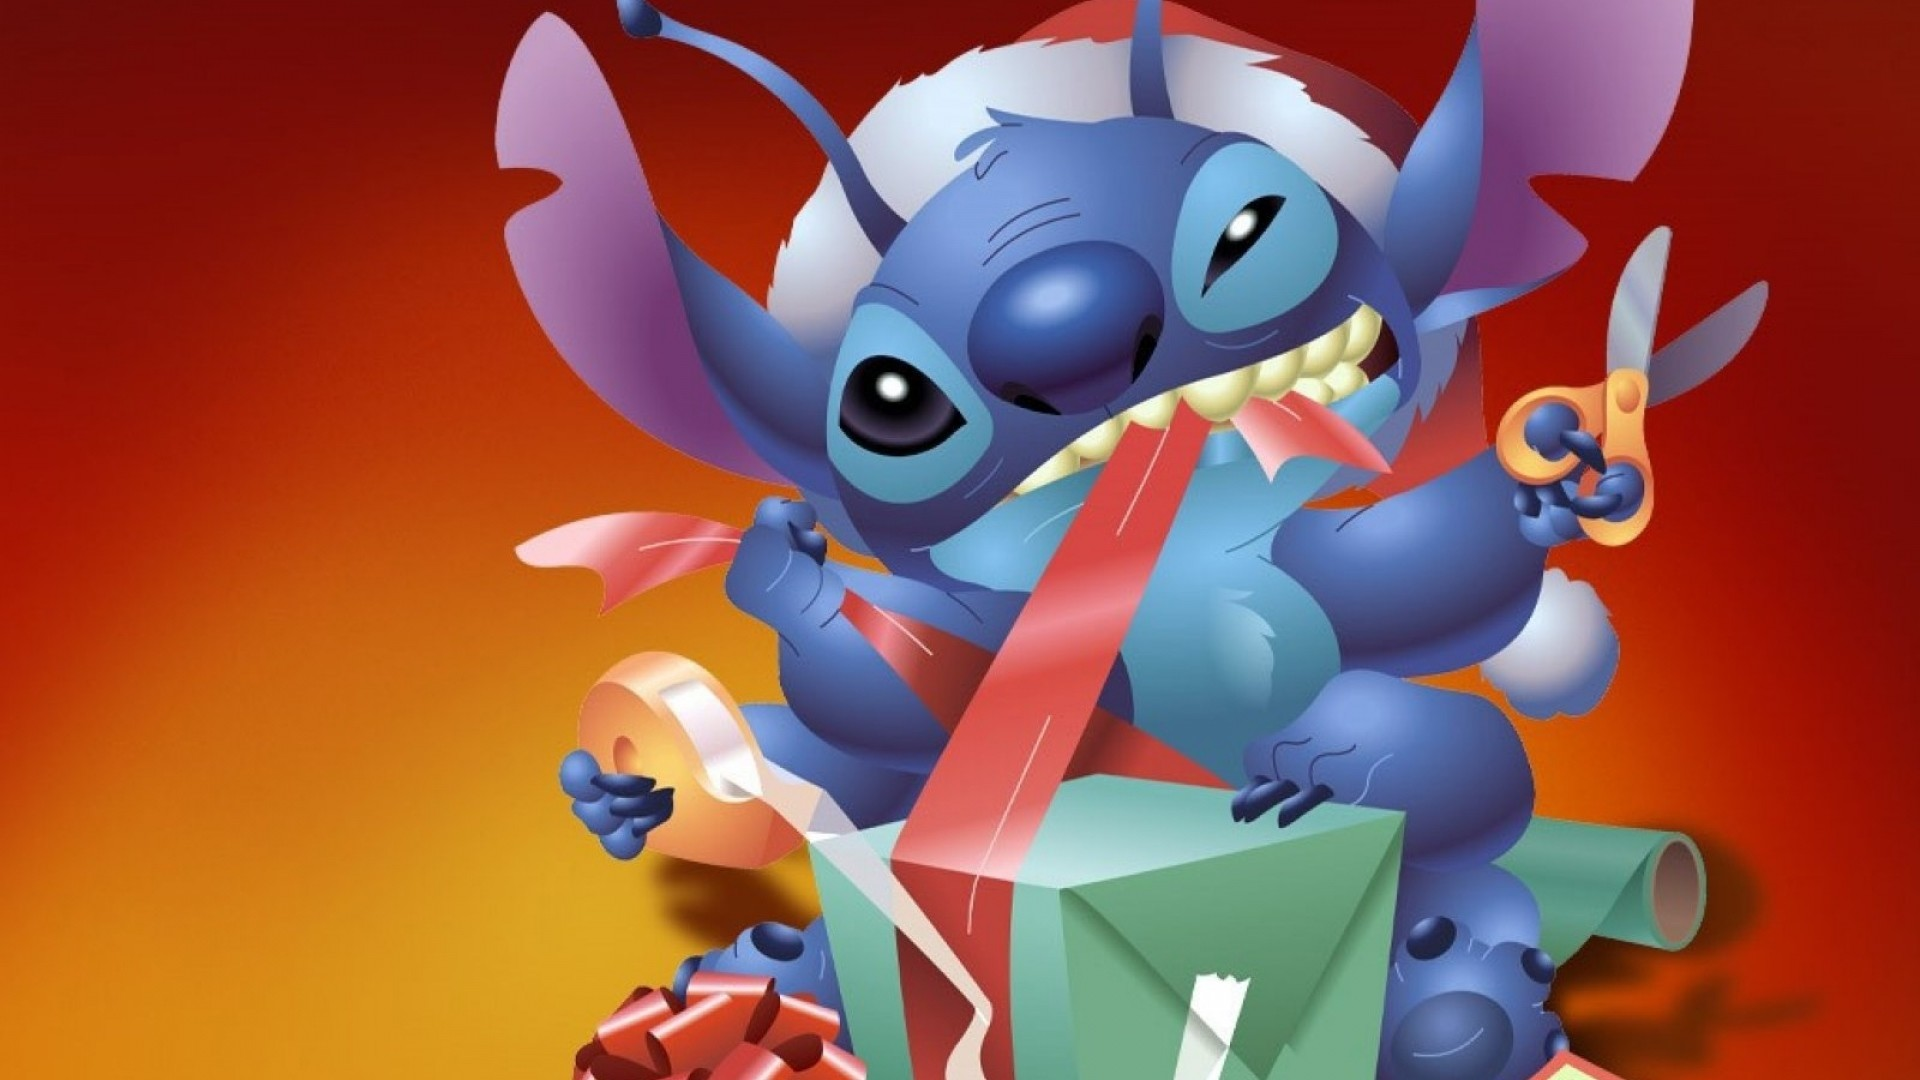 Wallpaper new year, christmas, gift, stich